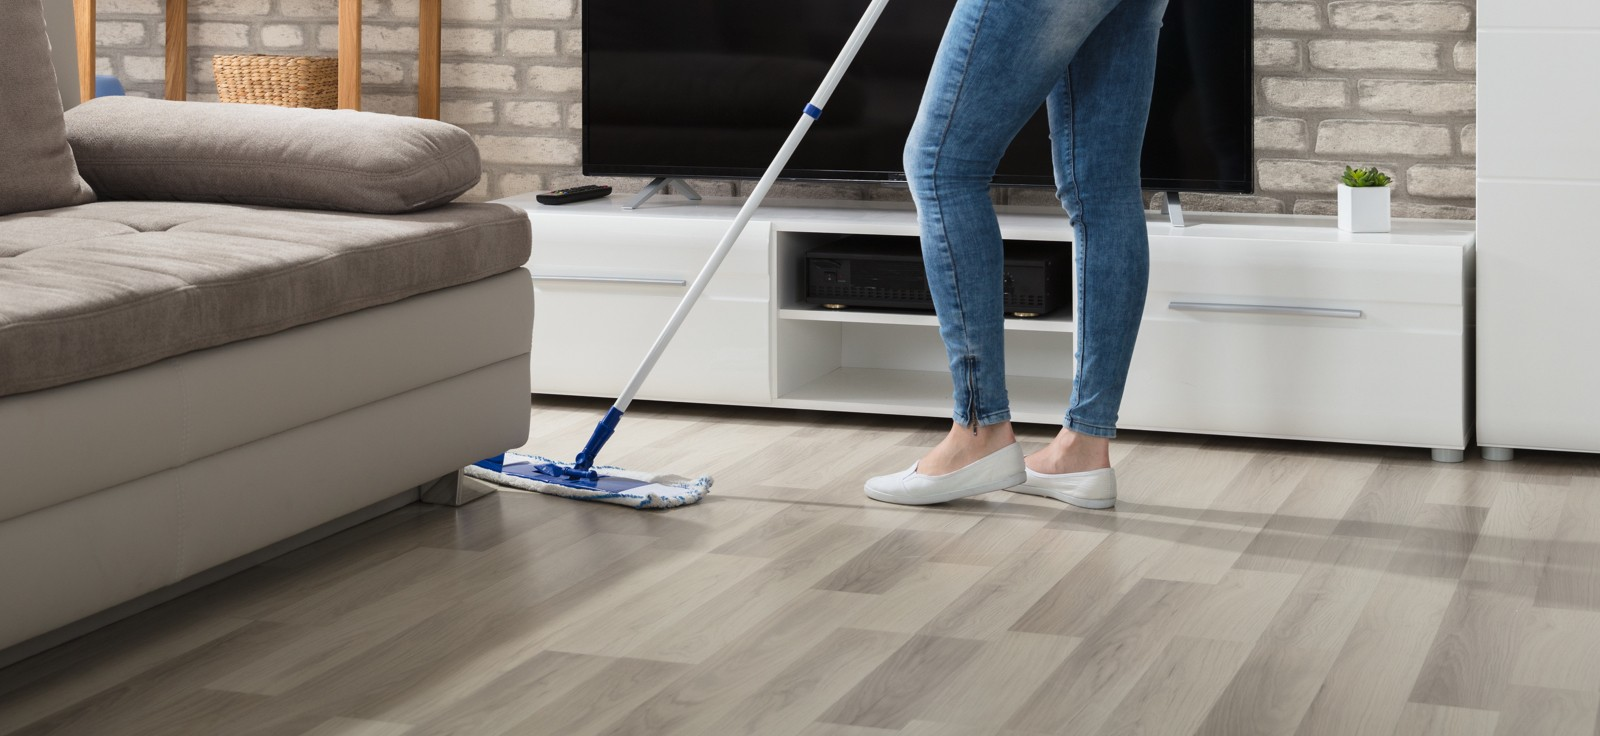 Floor cleaning | Jack's Carpet And Tile